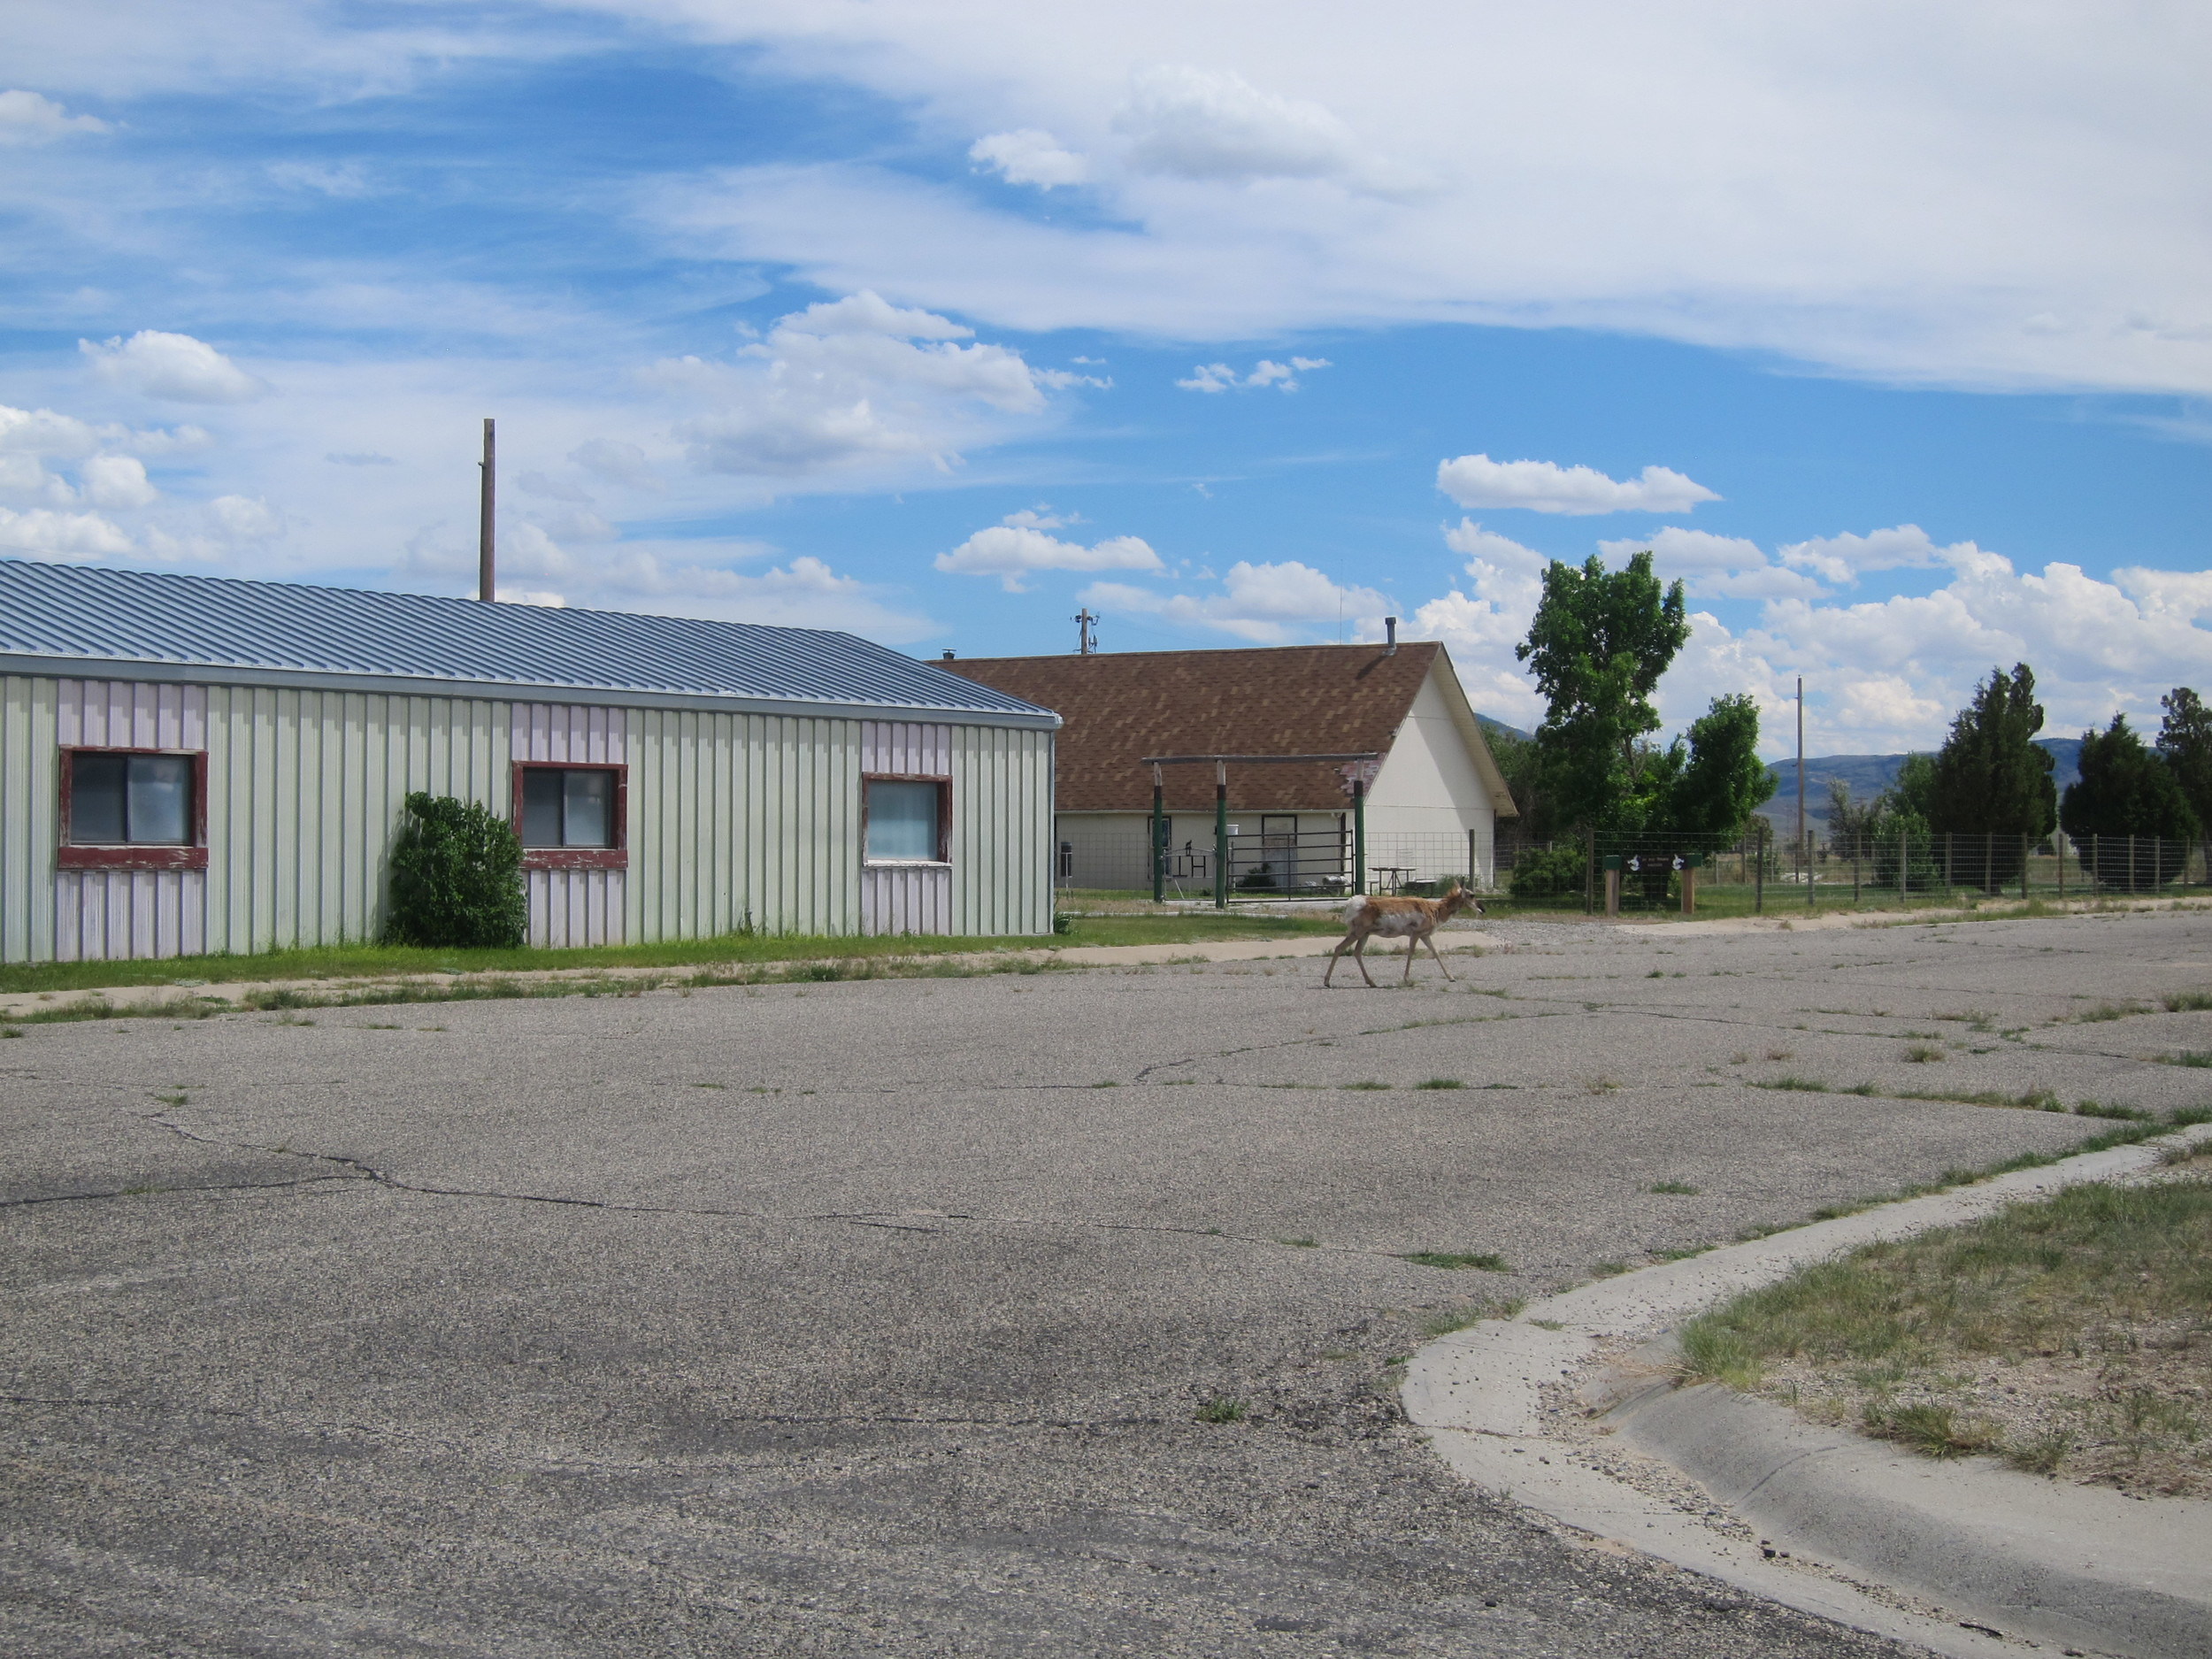 Jeffrey City. All boarded up and deer running the 'town'.